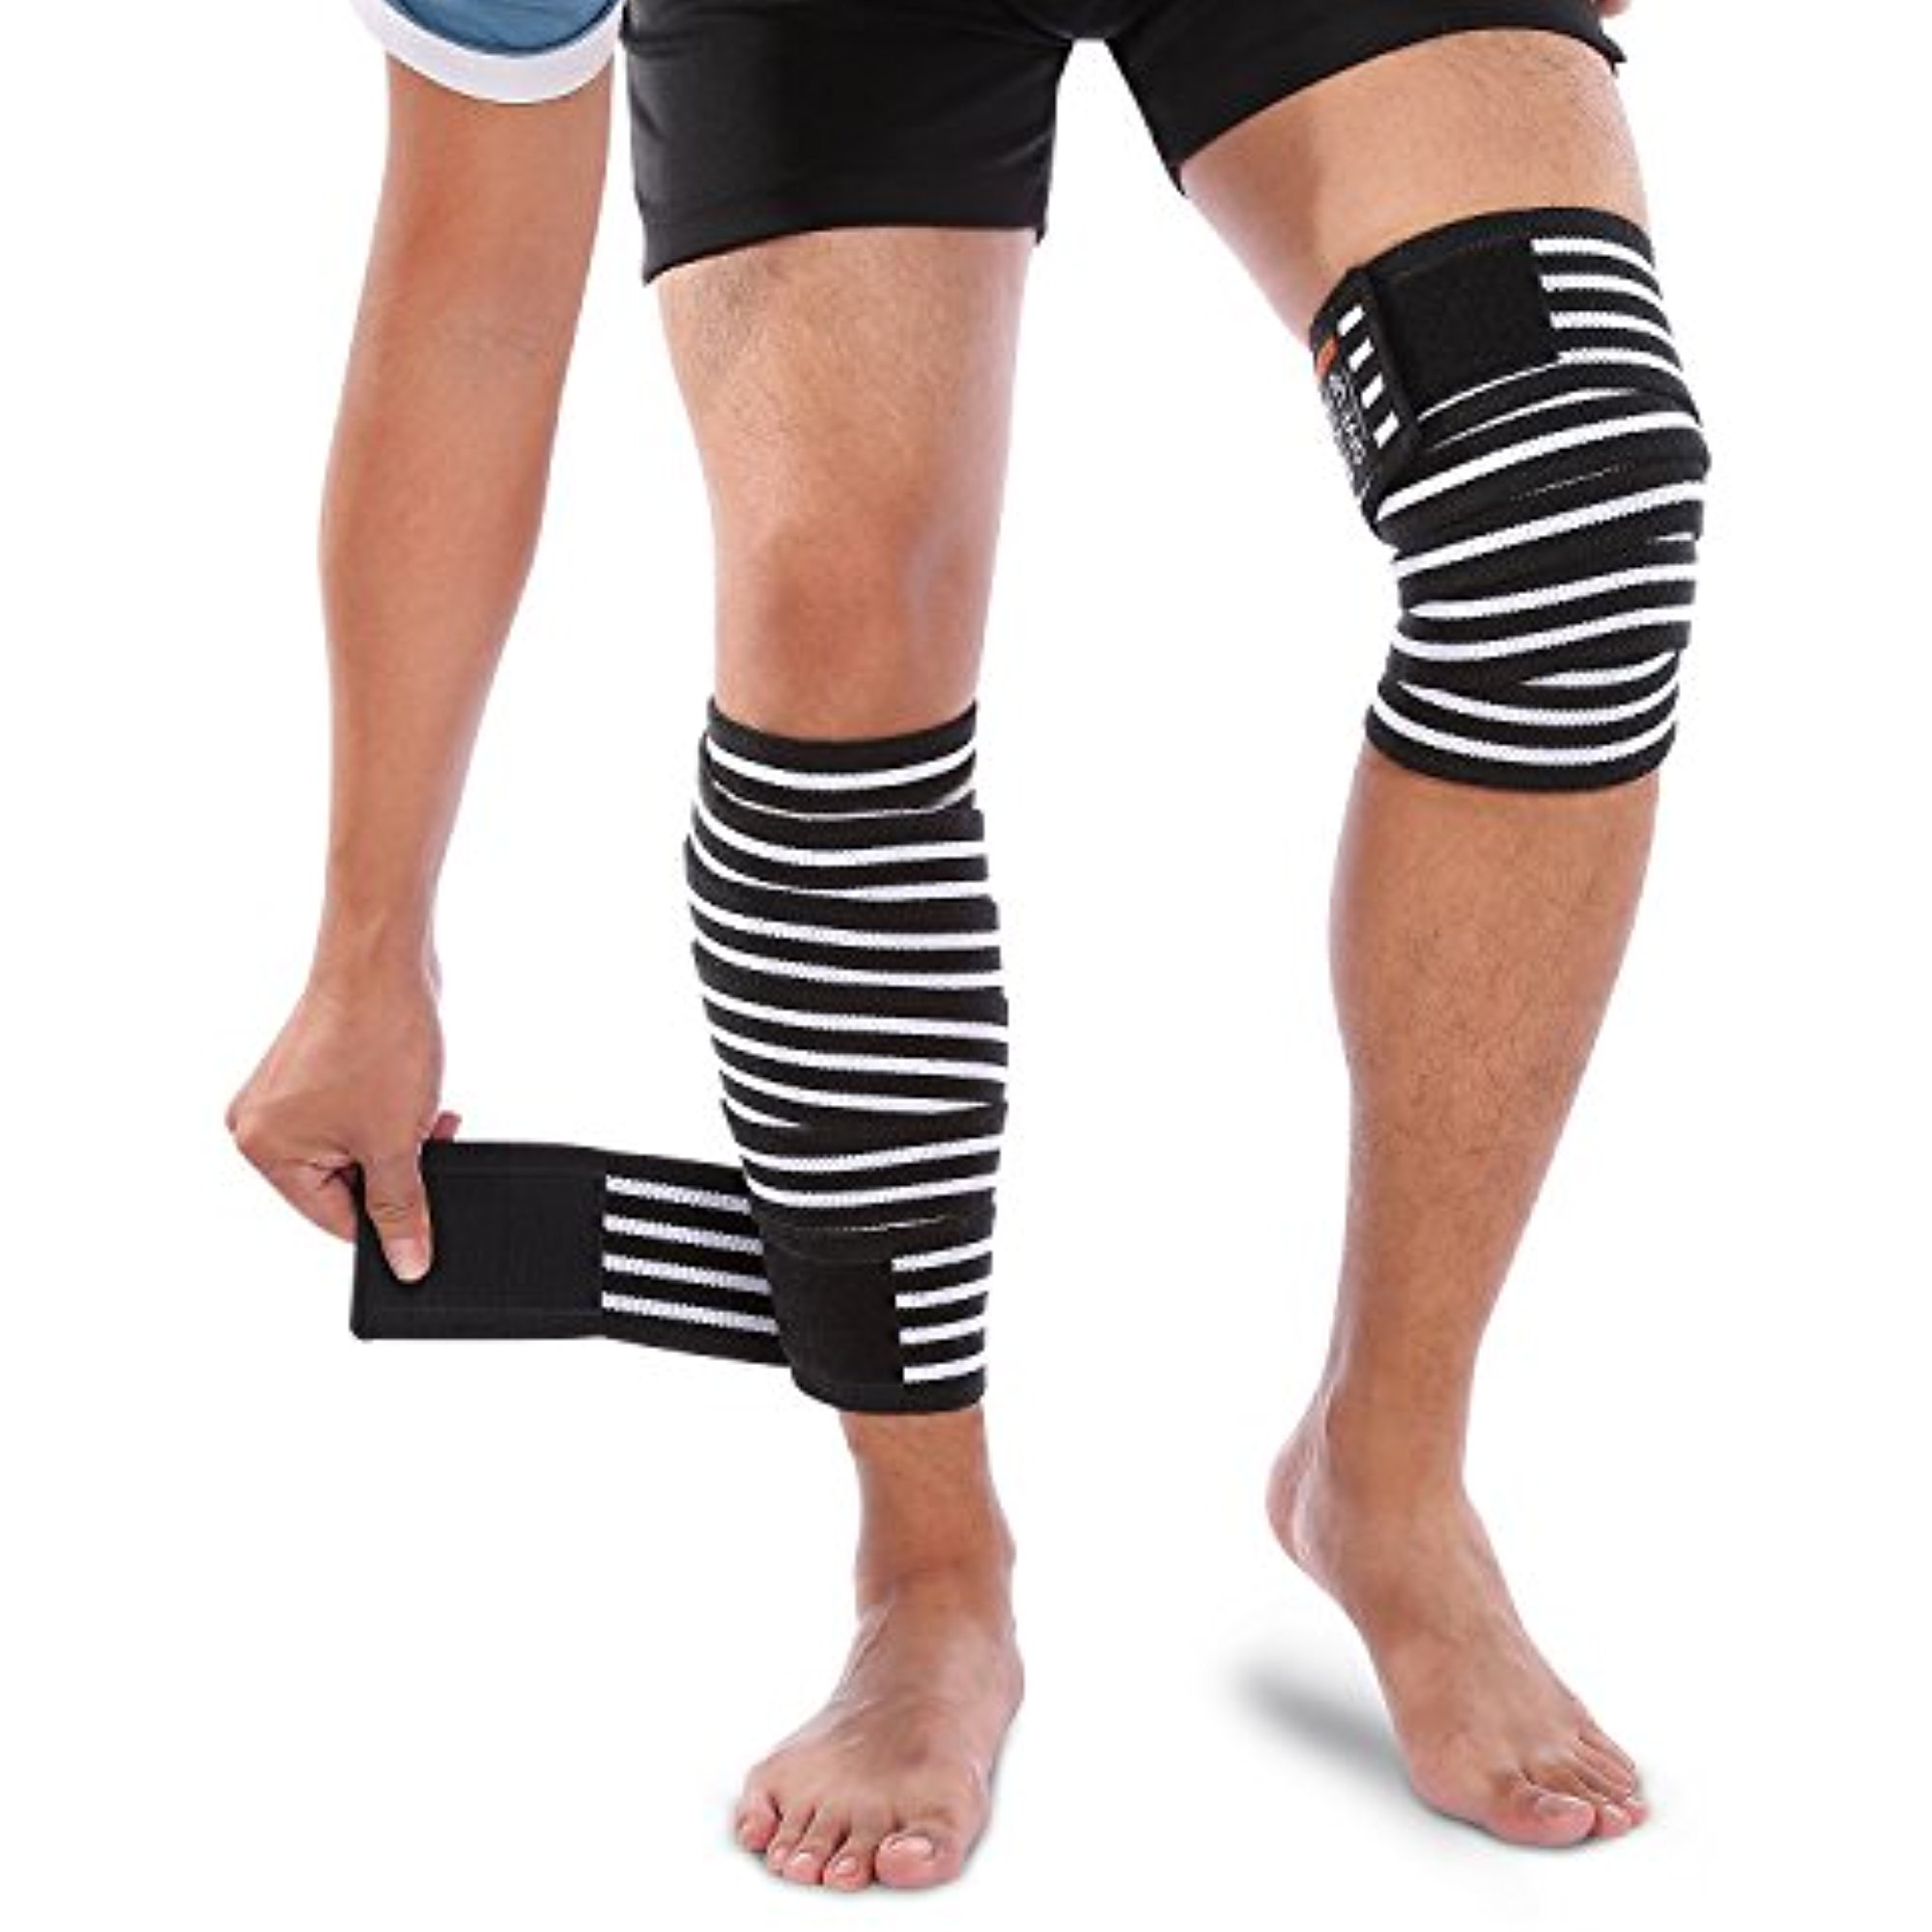 Yosoo Knee Wraps Calf Compression Knee Sleeve Thigh Adjustable Wrap Leg Elastic Support Brace for Women Men